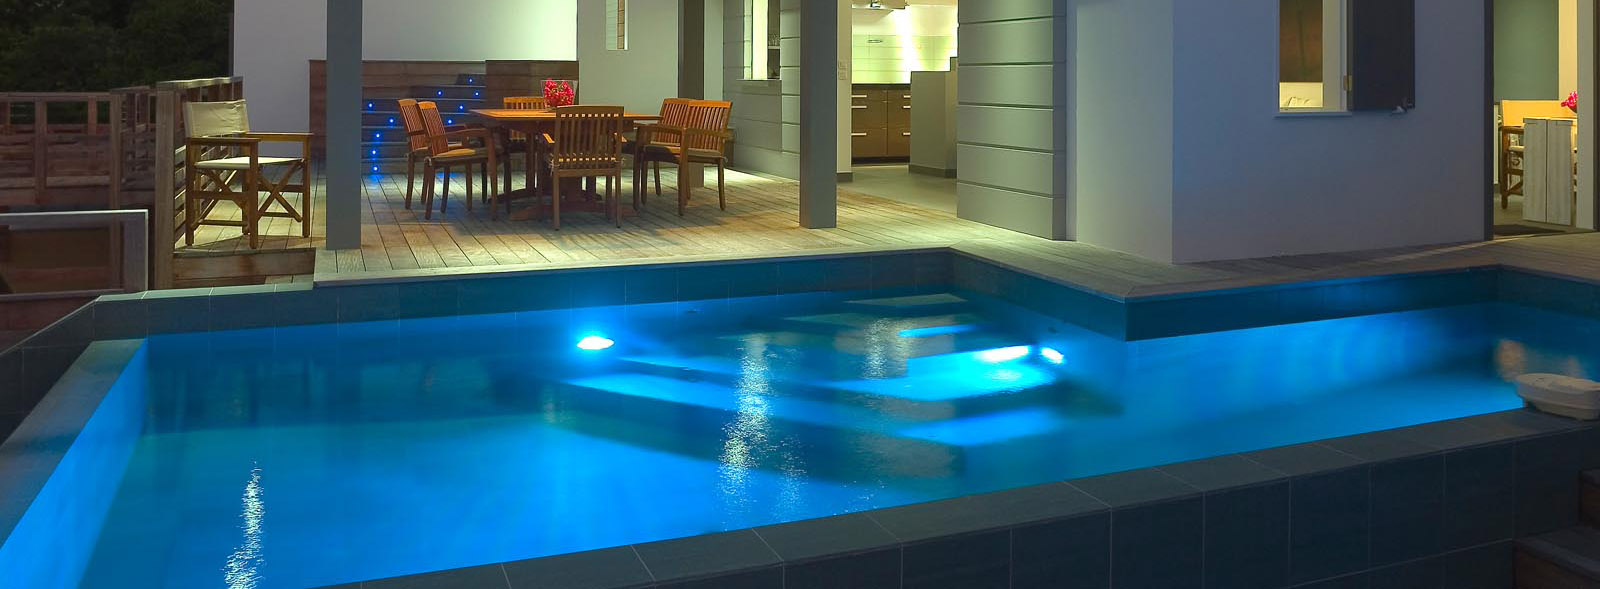 indoor pool lighting contemporary swimming pool led lights and lighting in atlantic seaboard southern suburbs cape town led aqua 50 150 kreepy krauly universal